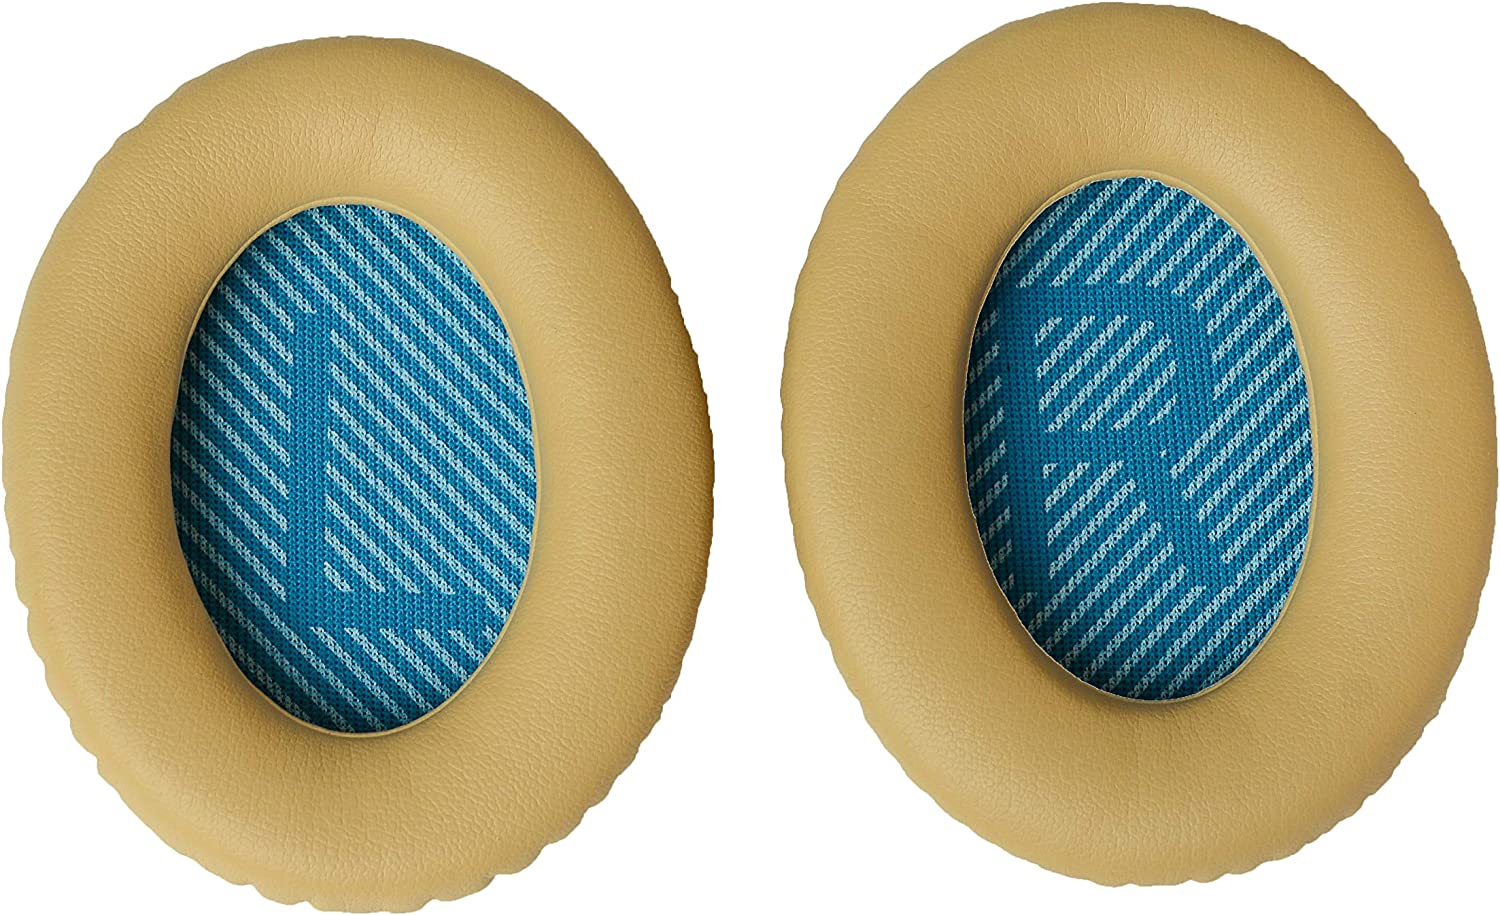 QC25 Replacement Ear Cushions Compatible with Bose QuietComfort 25 QC25, Beige Complete with QC25 Shaped scrims with L and R/' Lettering Headphones